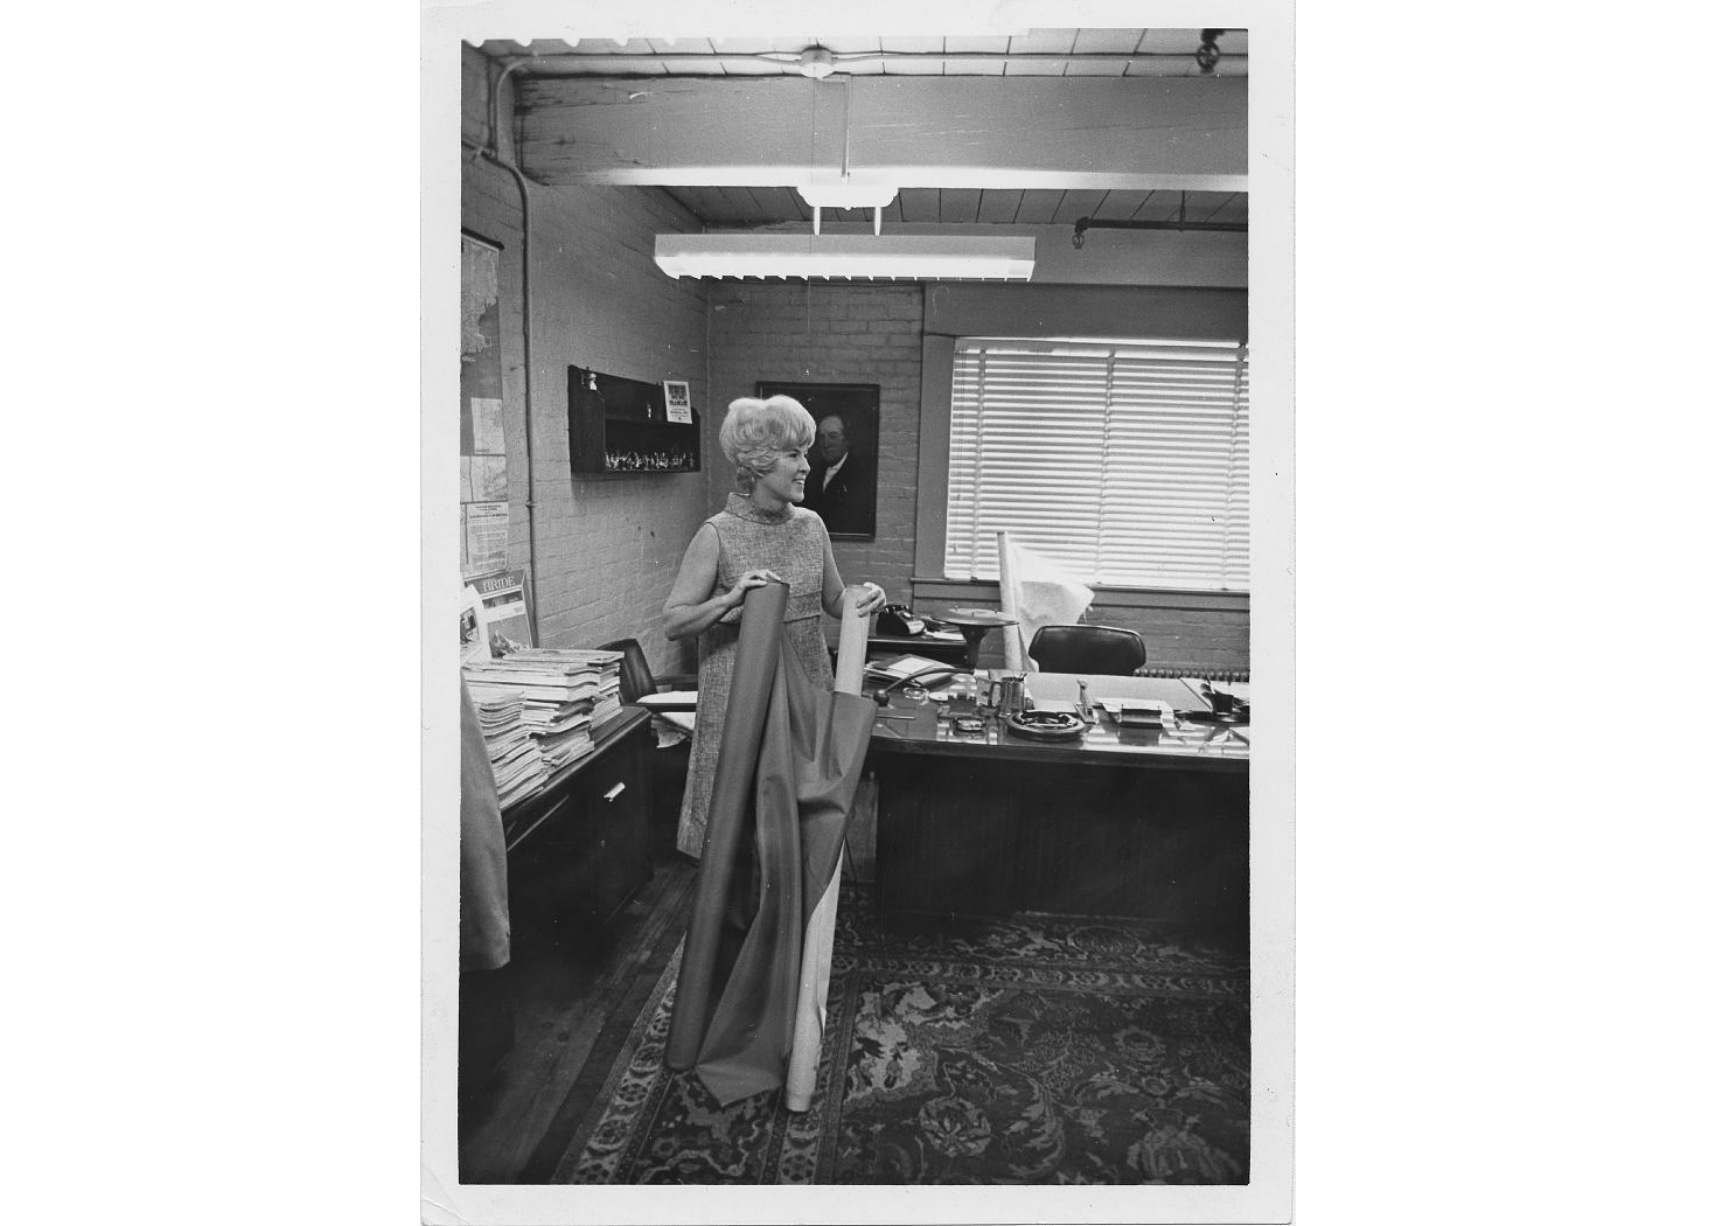 Priscilla Kidder at work in her studio, approx 1970